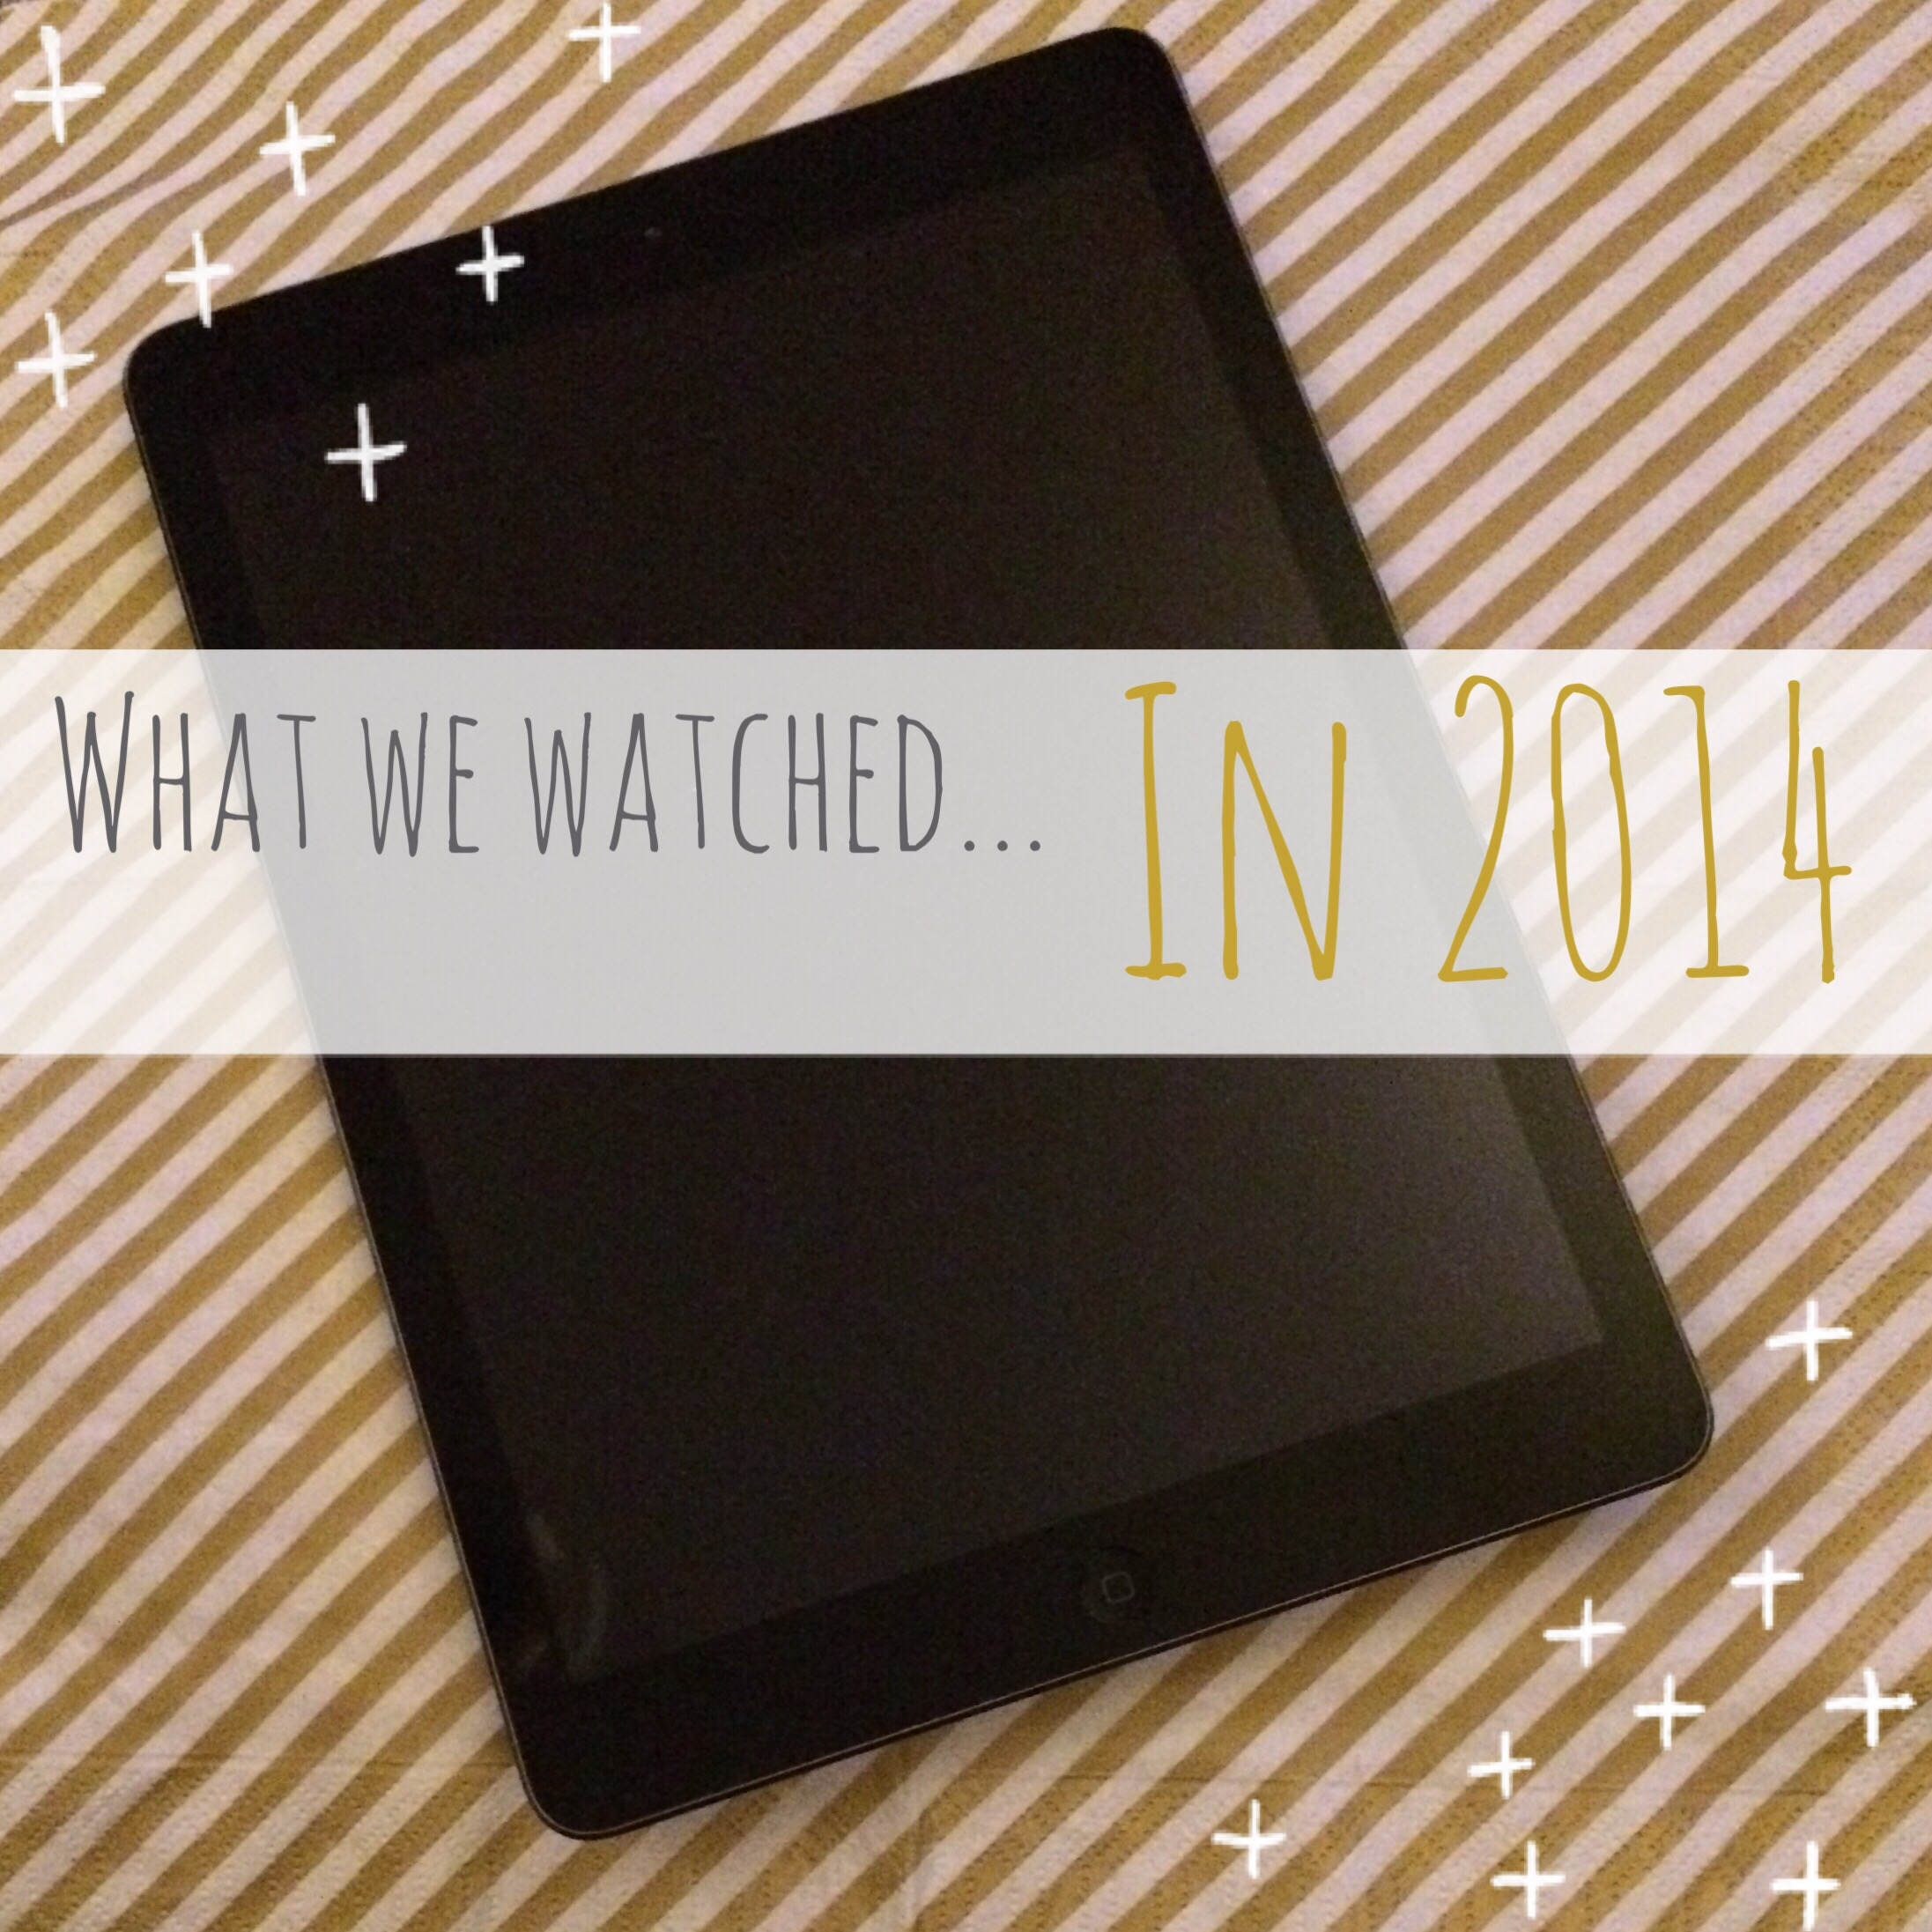 Netflix recommendations from 2014 - film and TV